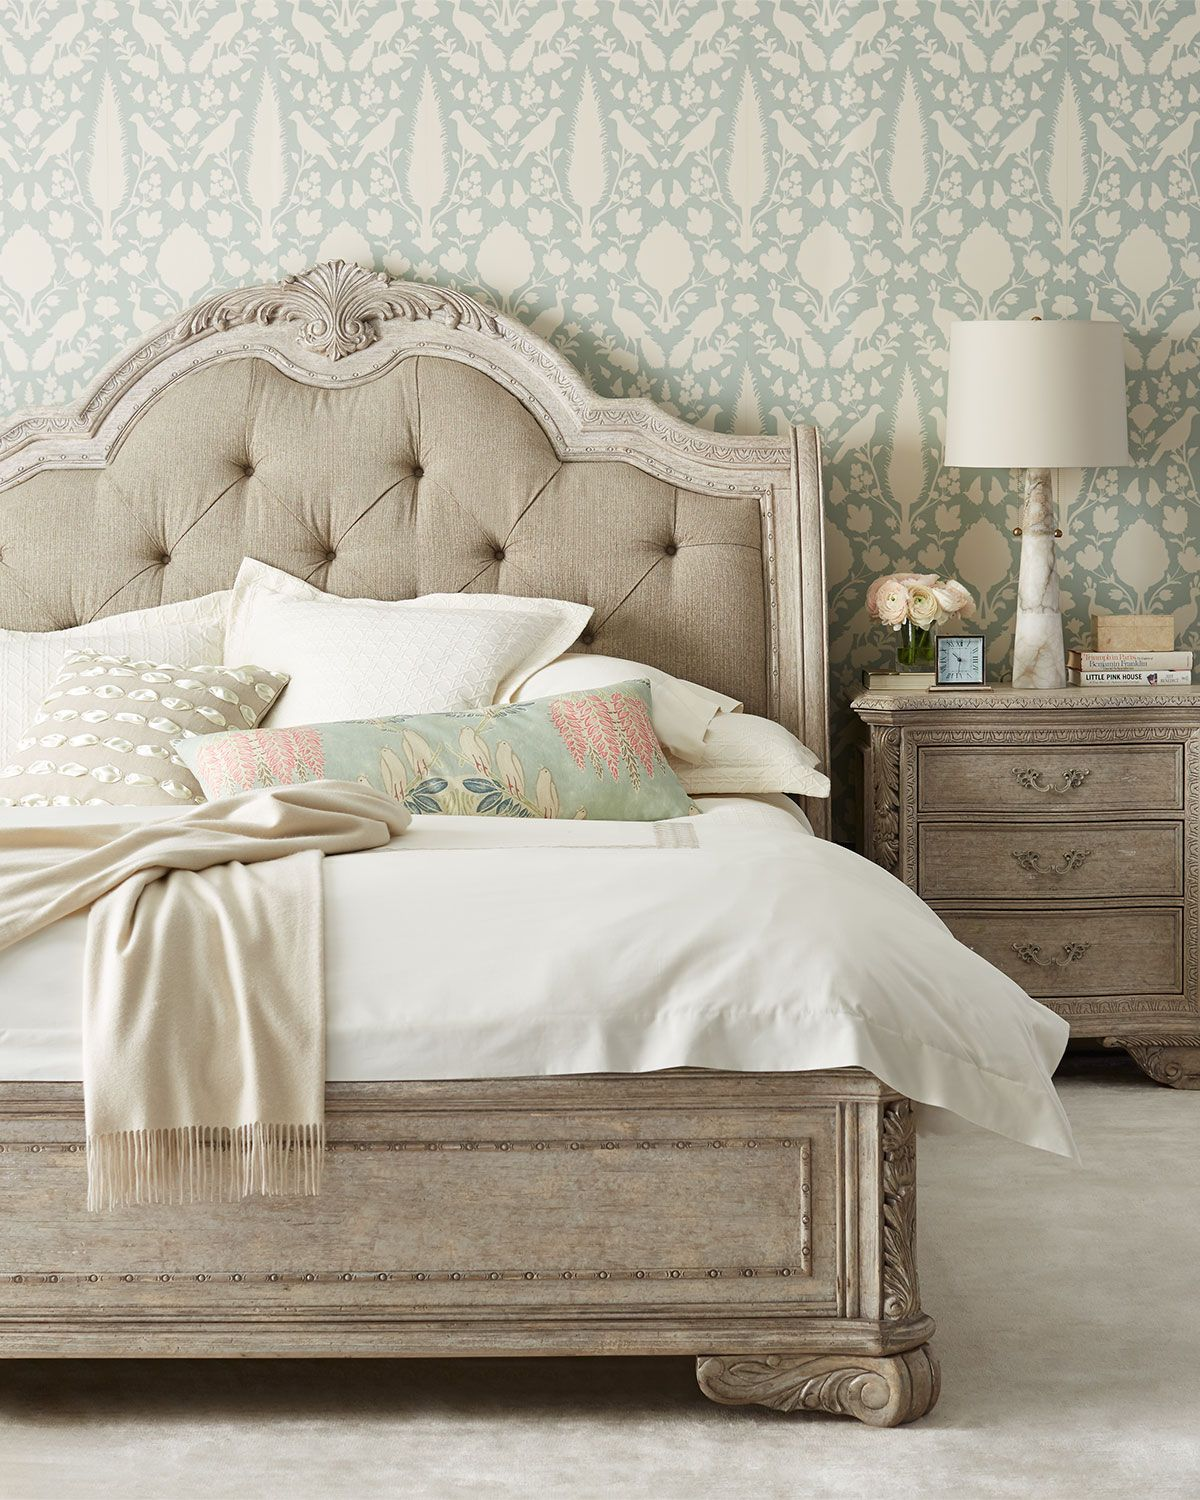 Camilla Bedroom Furniture Country Bedroom Decor Country Bedroom French Country Bedrooms